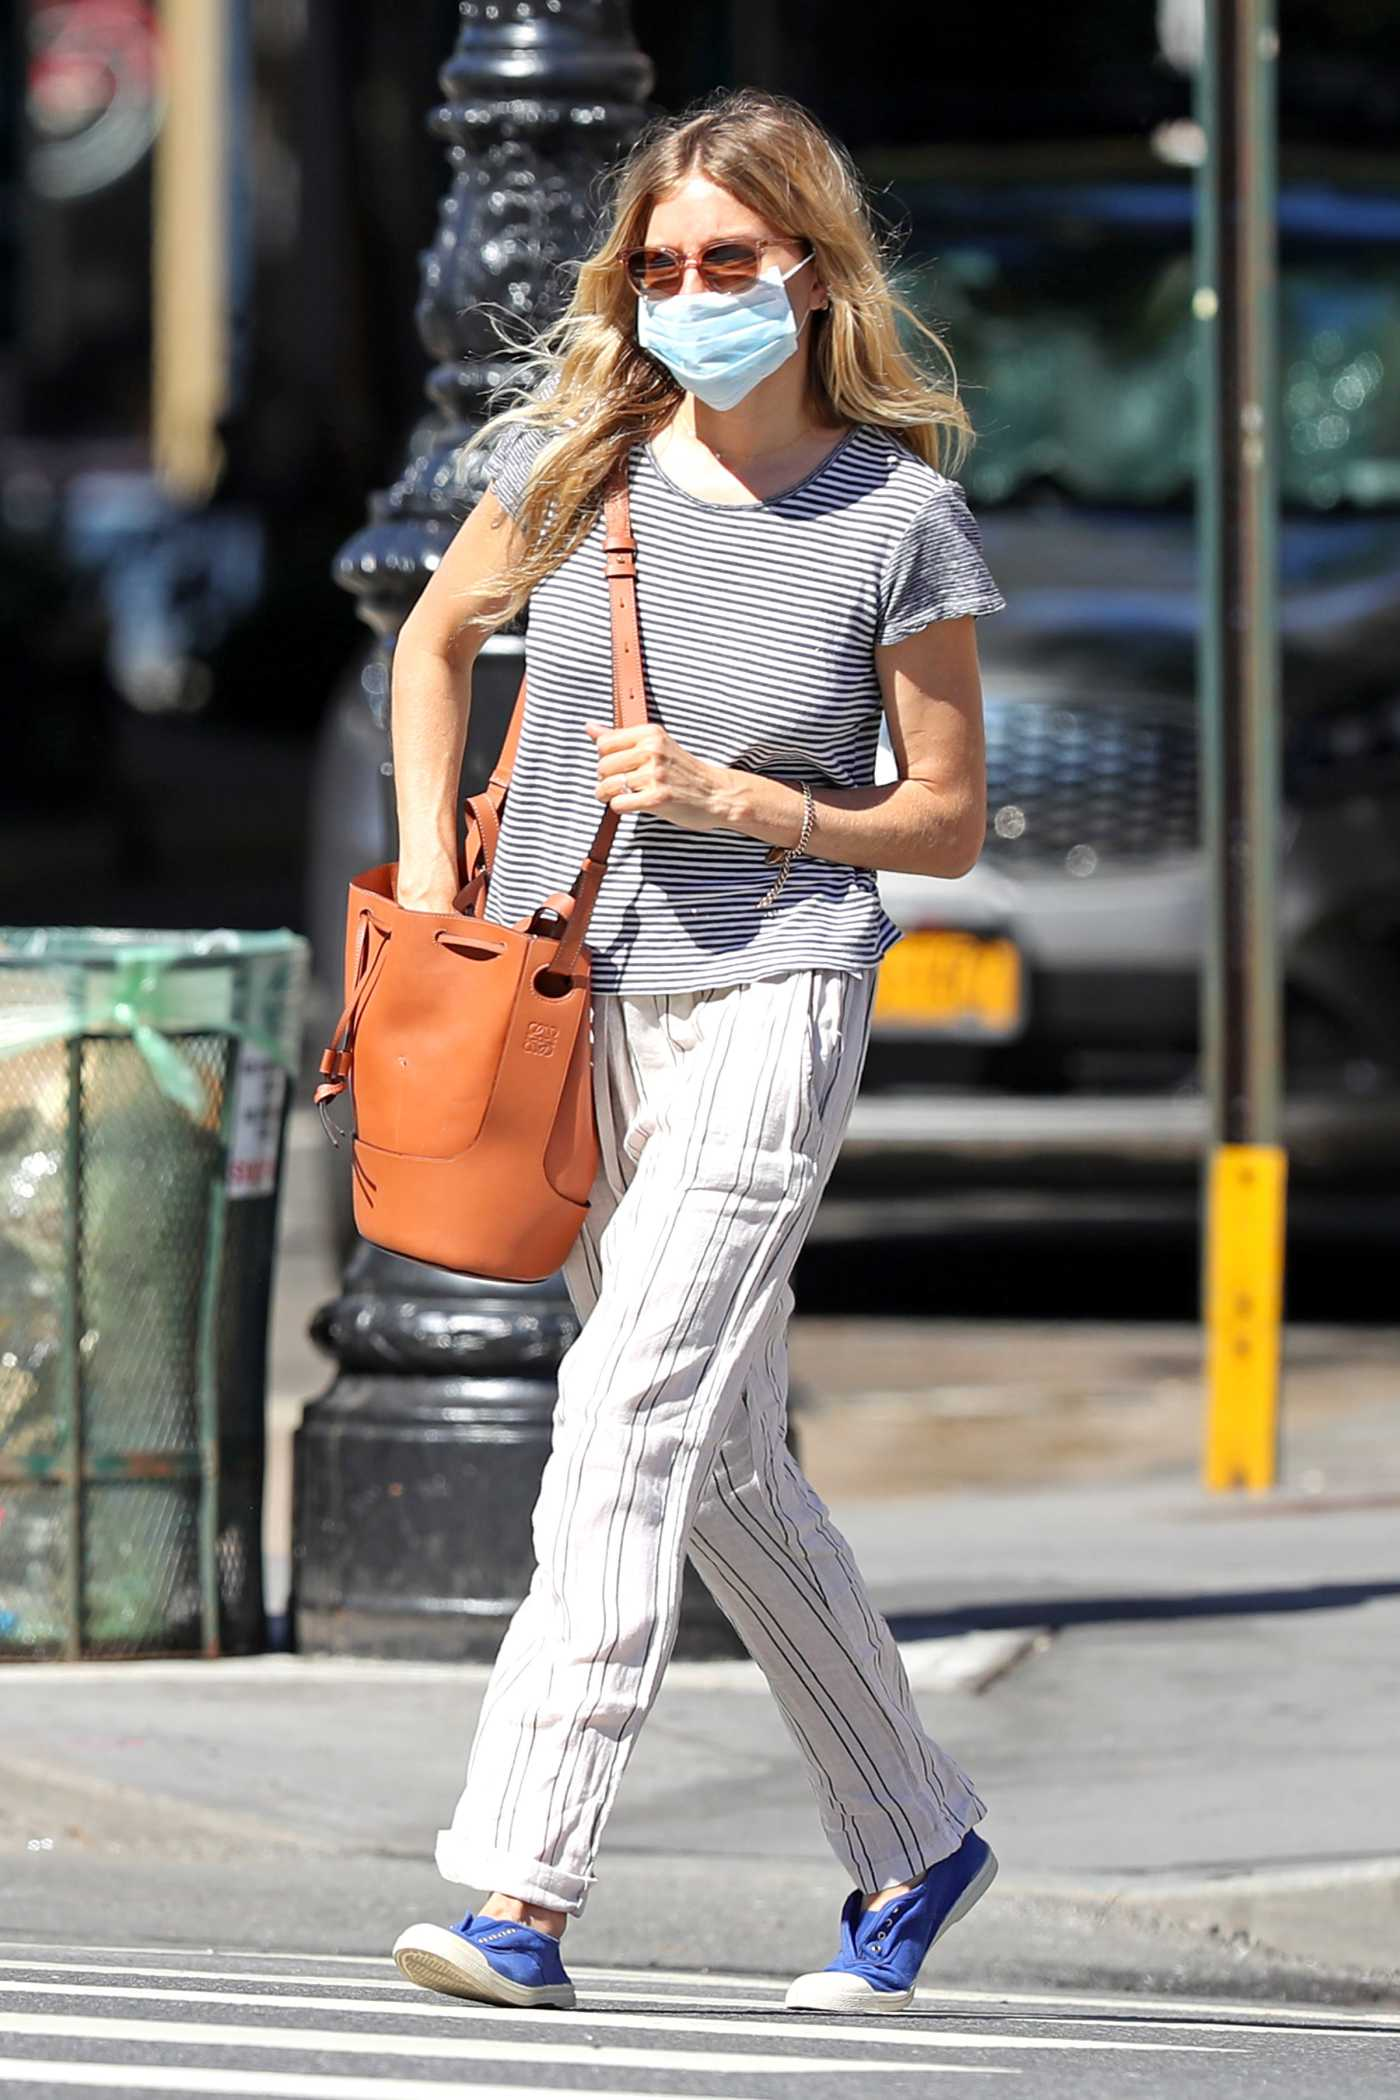 Sienna Miller in a Striped T-Shirt Was Seen Out in New York 06/12/2020